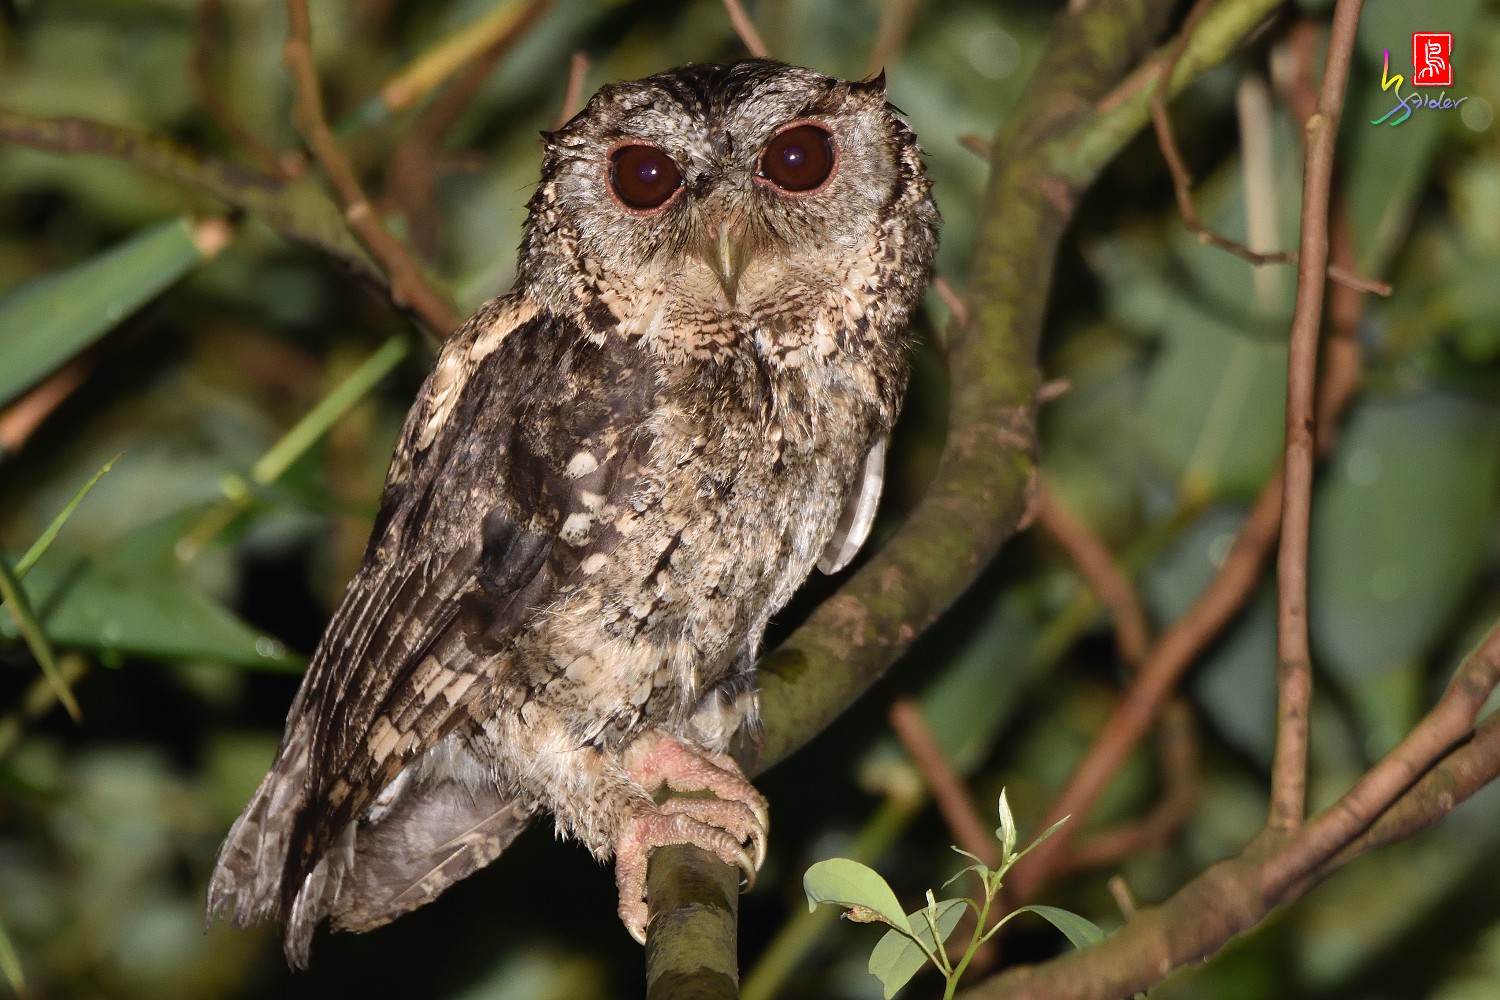 Collard_Scops_Owl_1482